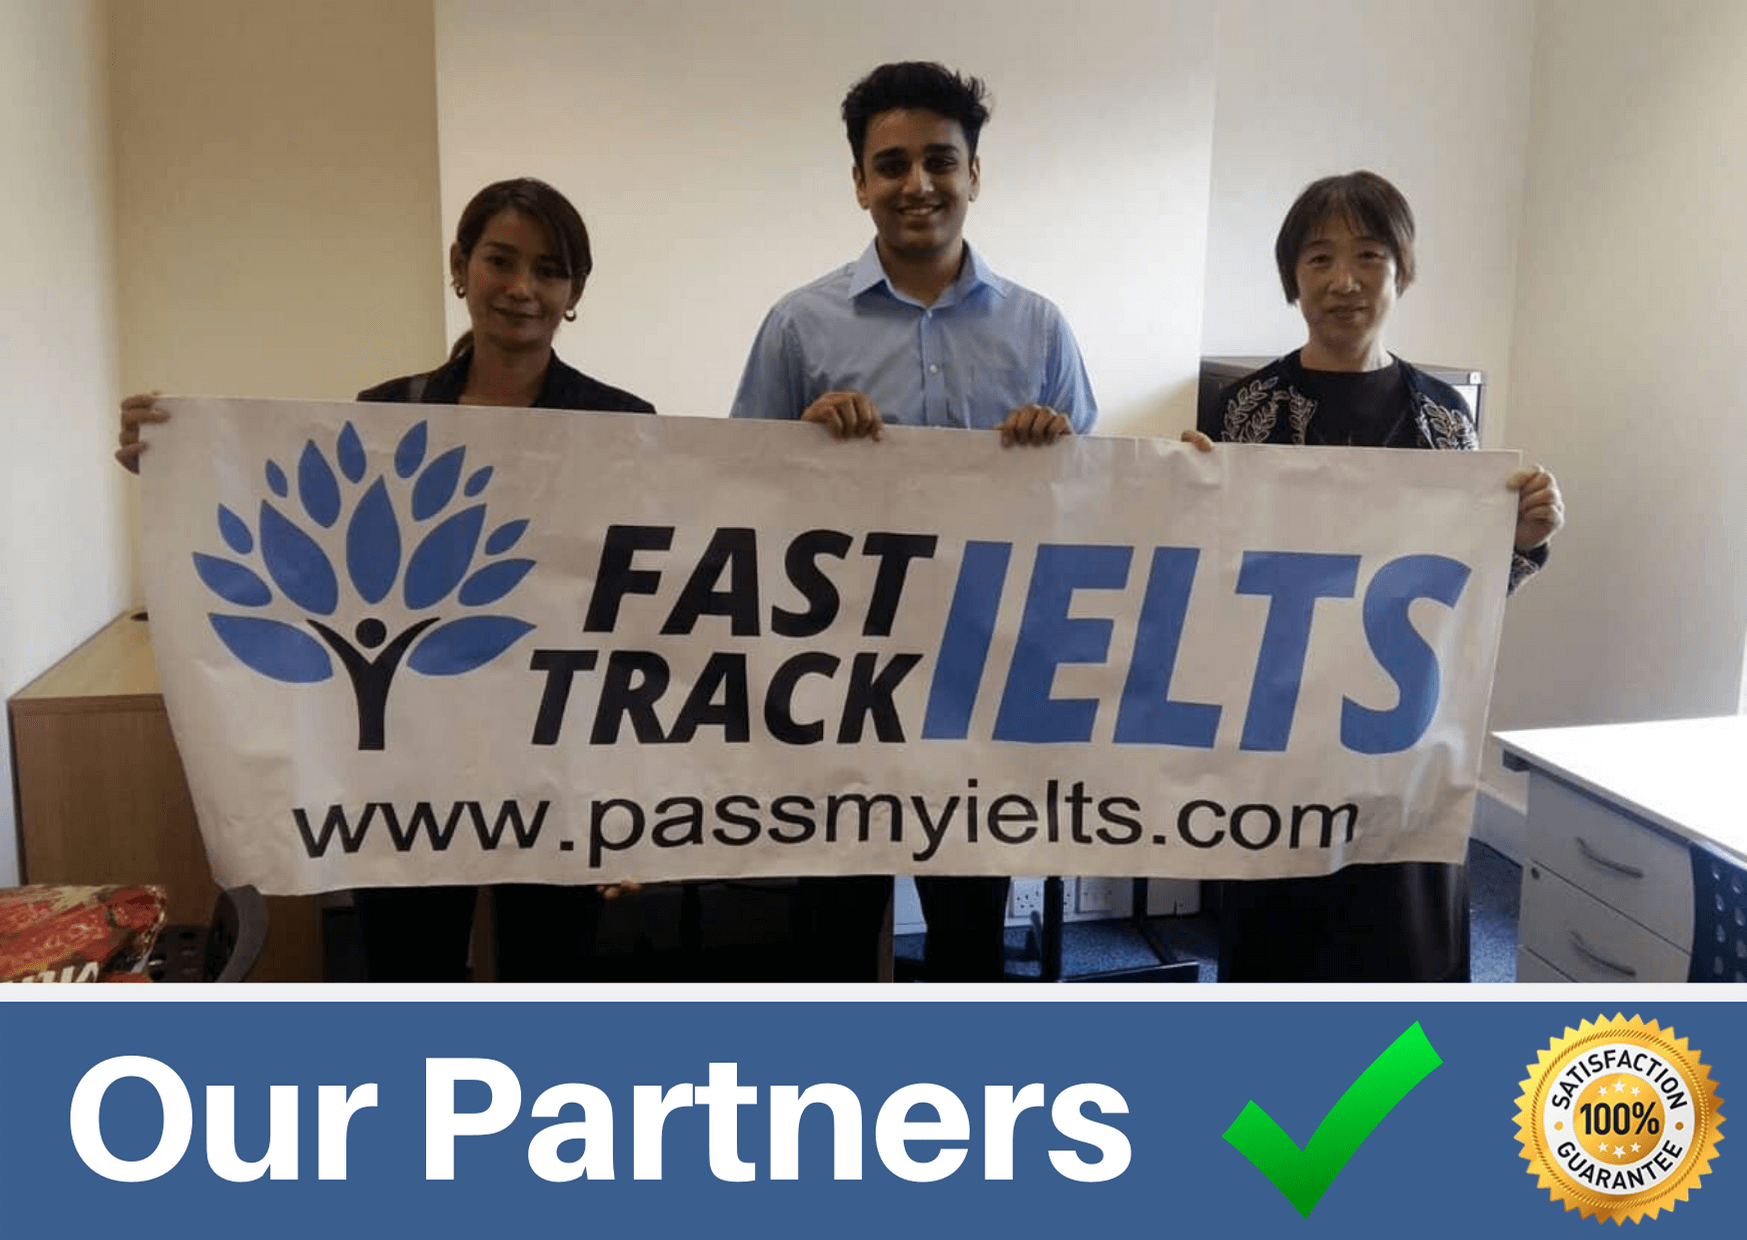 fast track ielts oet is our partner